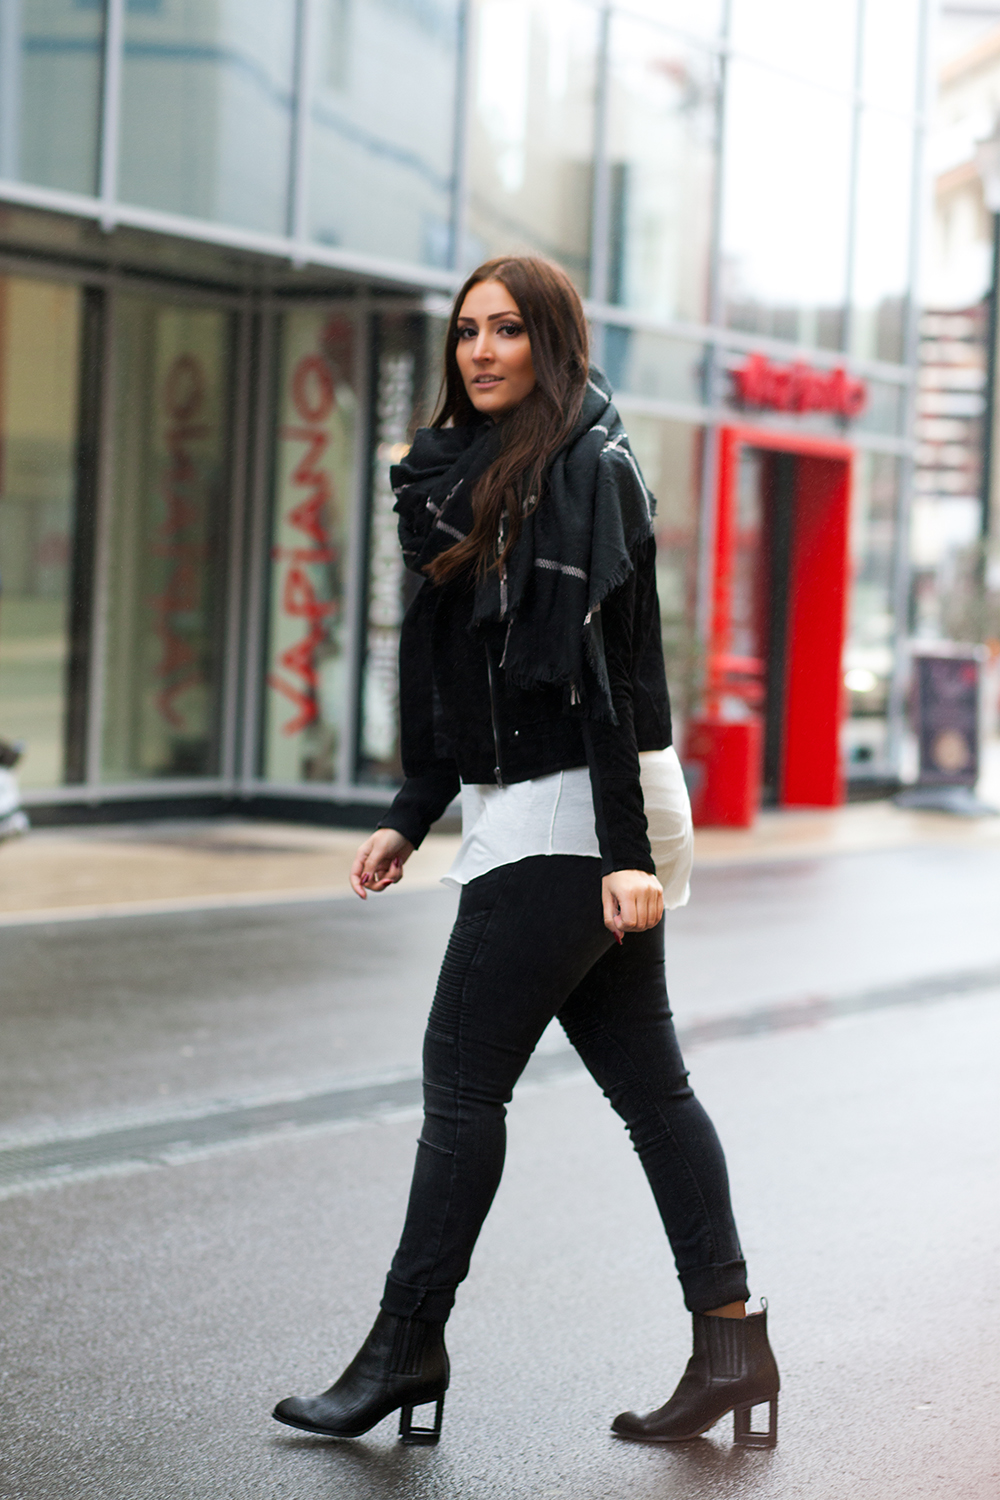 vero_outfit03a